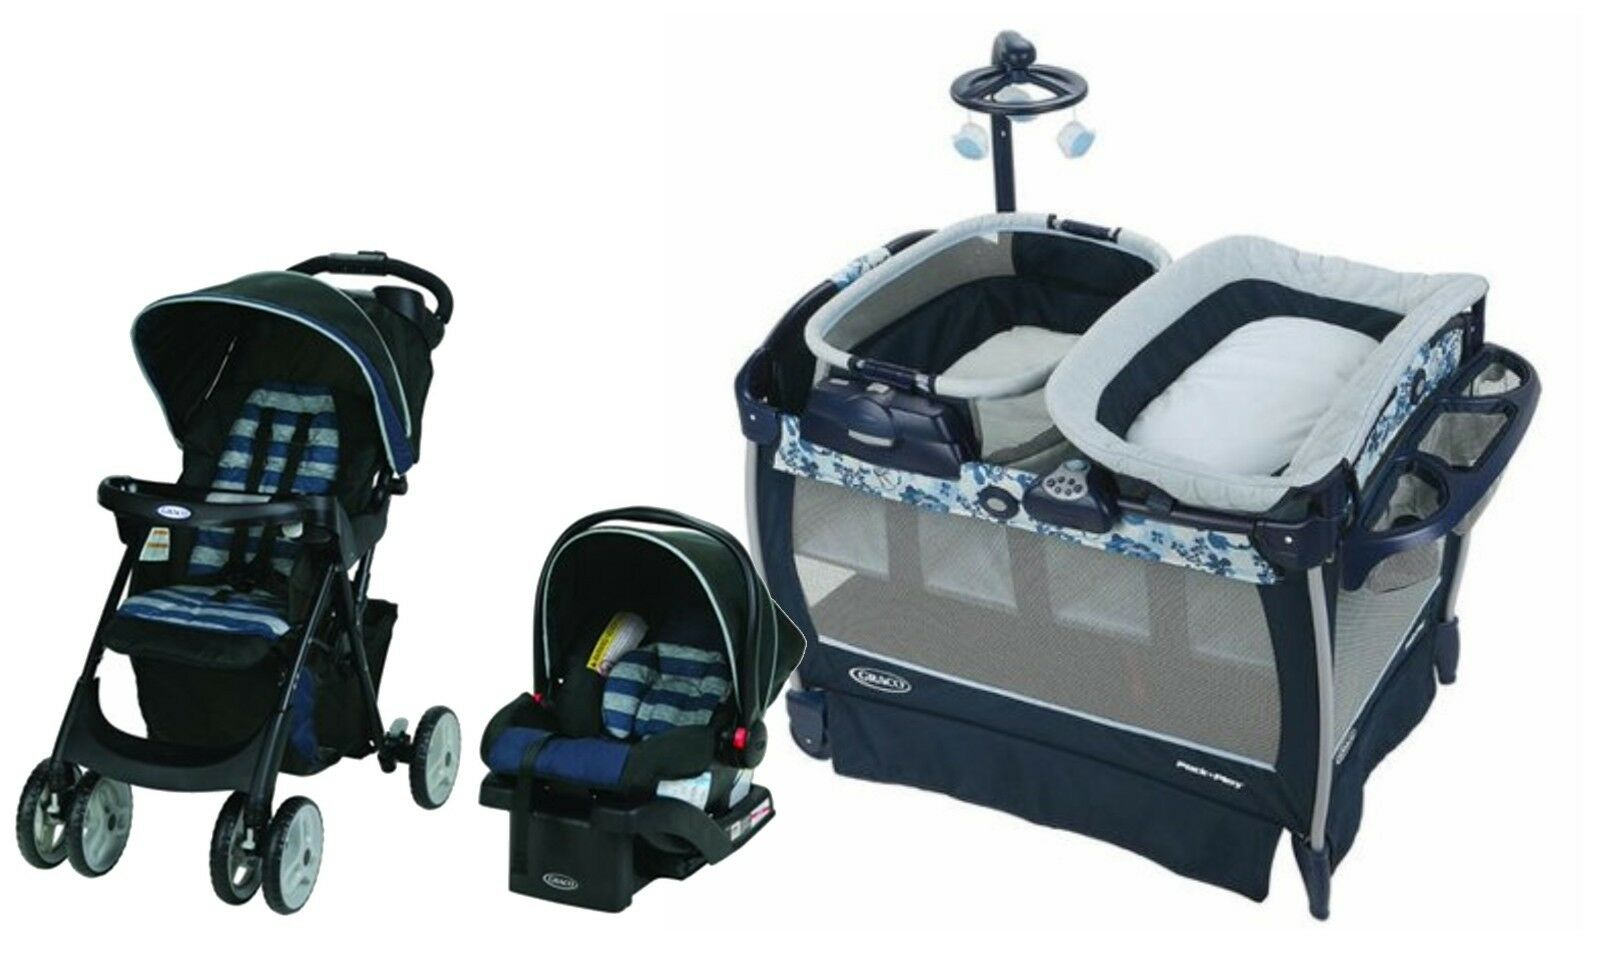 Graco Baby Stroller Car Seat Travel Set Newborn Portable Playard Folding Crib 1 Of 12Only 2 Available